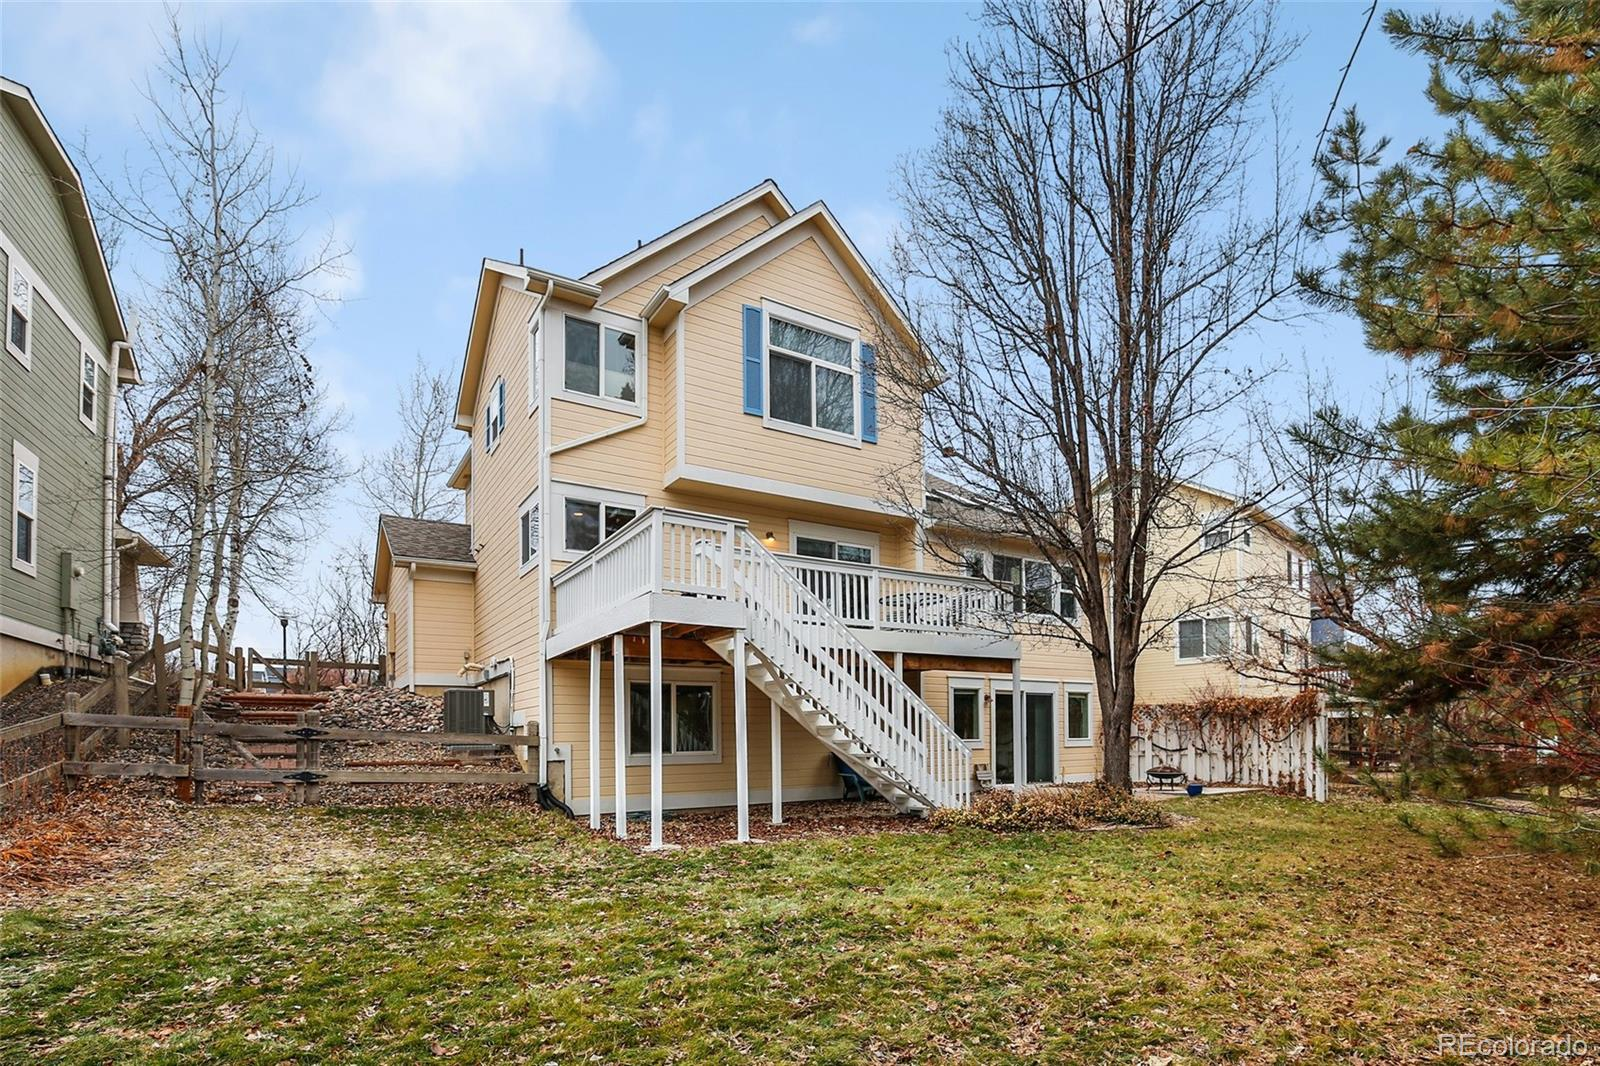 MLS# 5985201 - 28 - 2513 Concord Circle, Lafayette, CO 80026